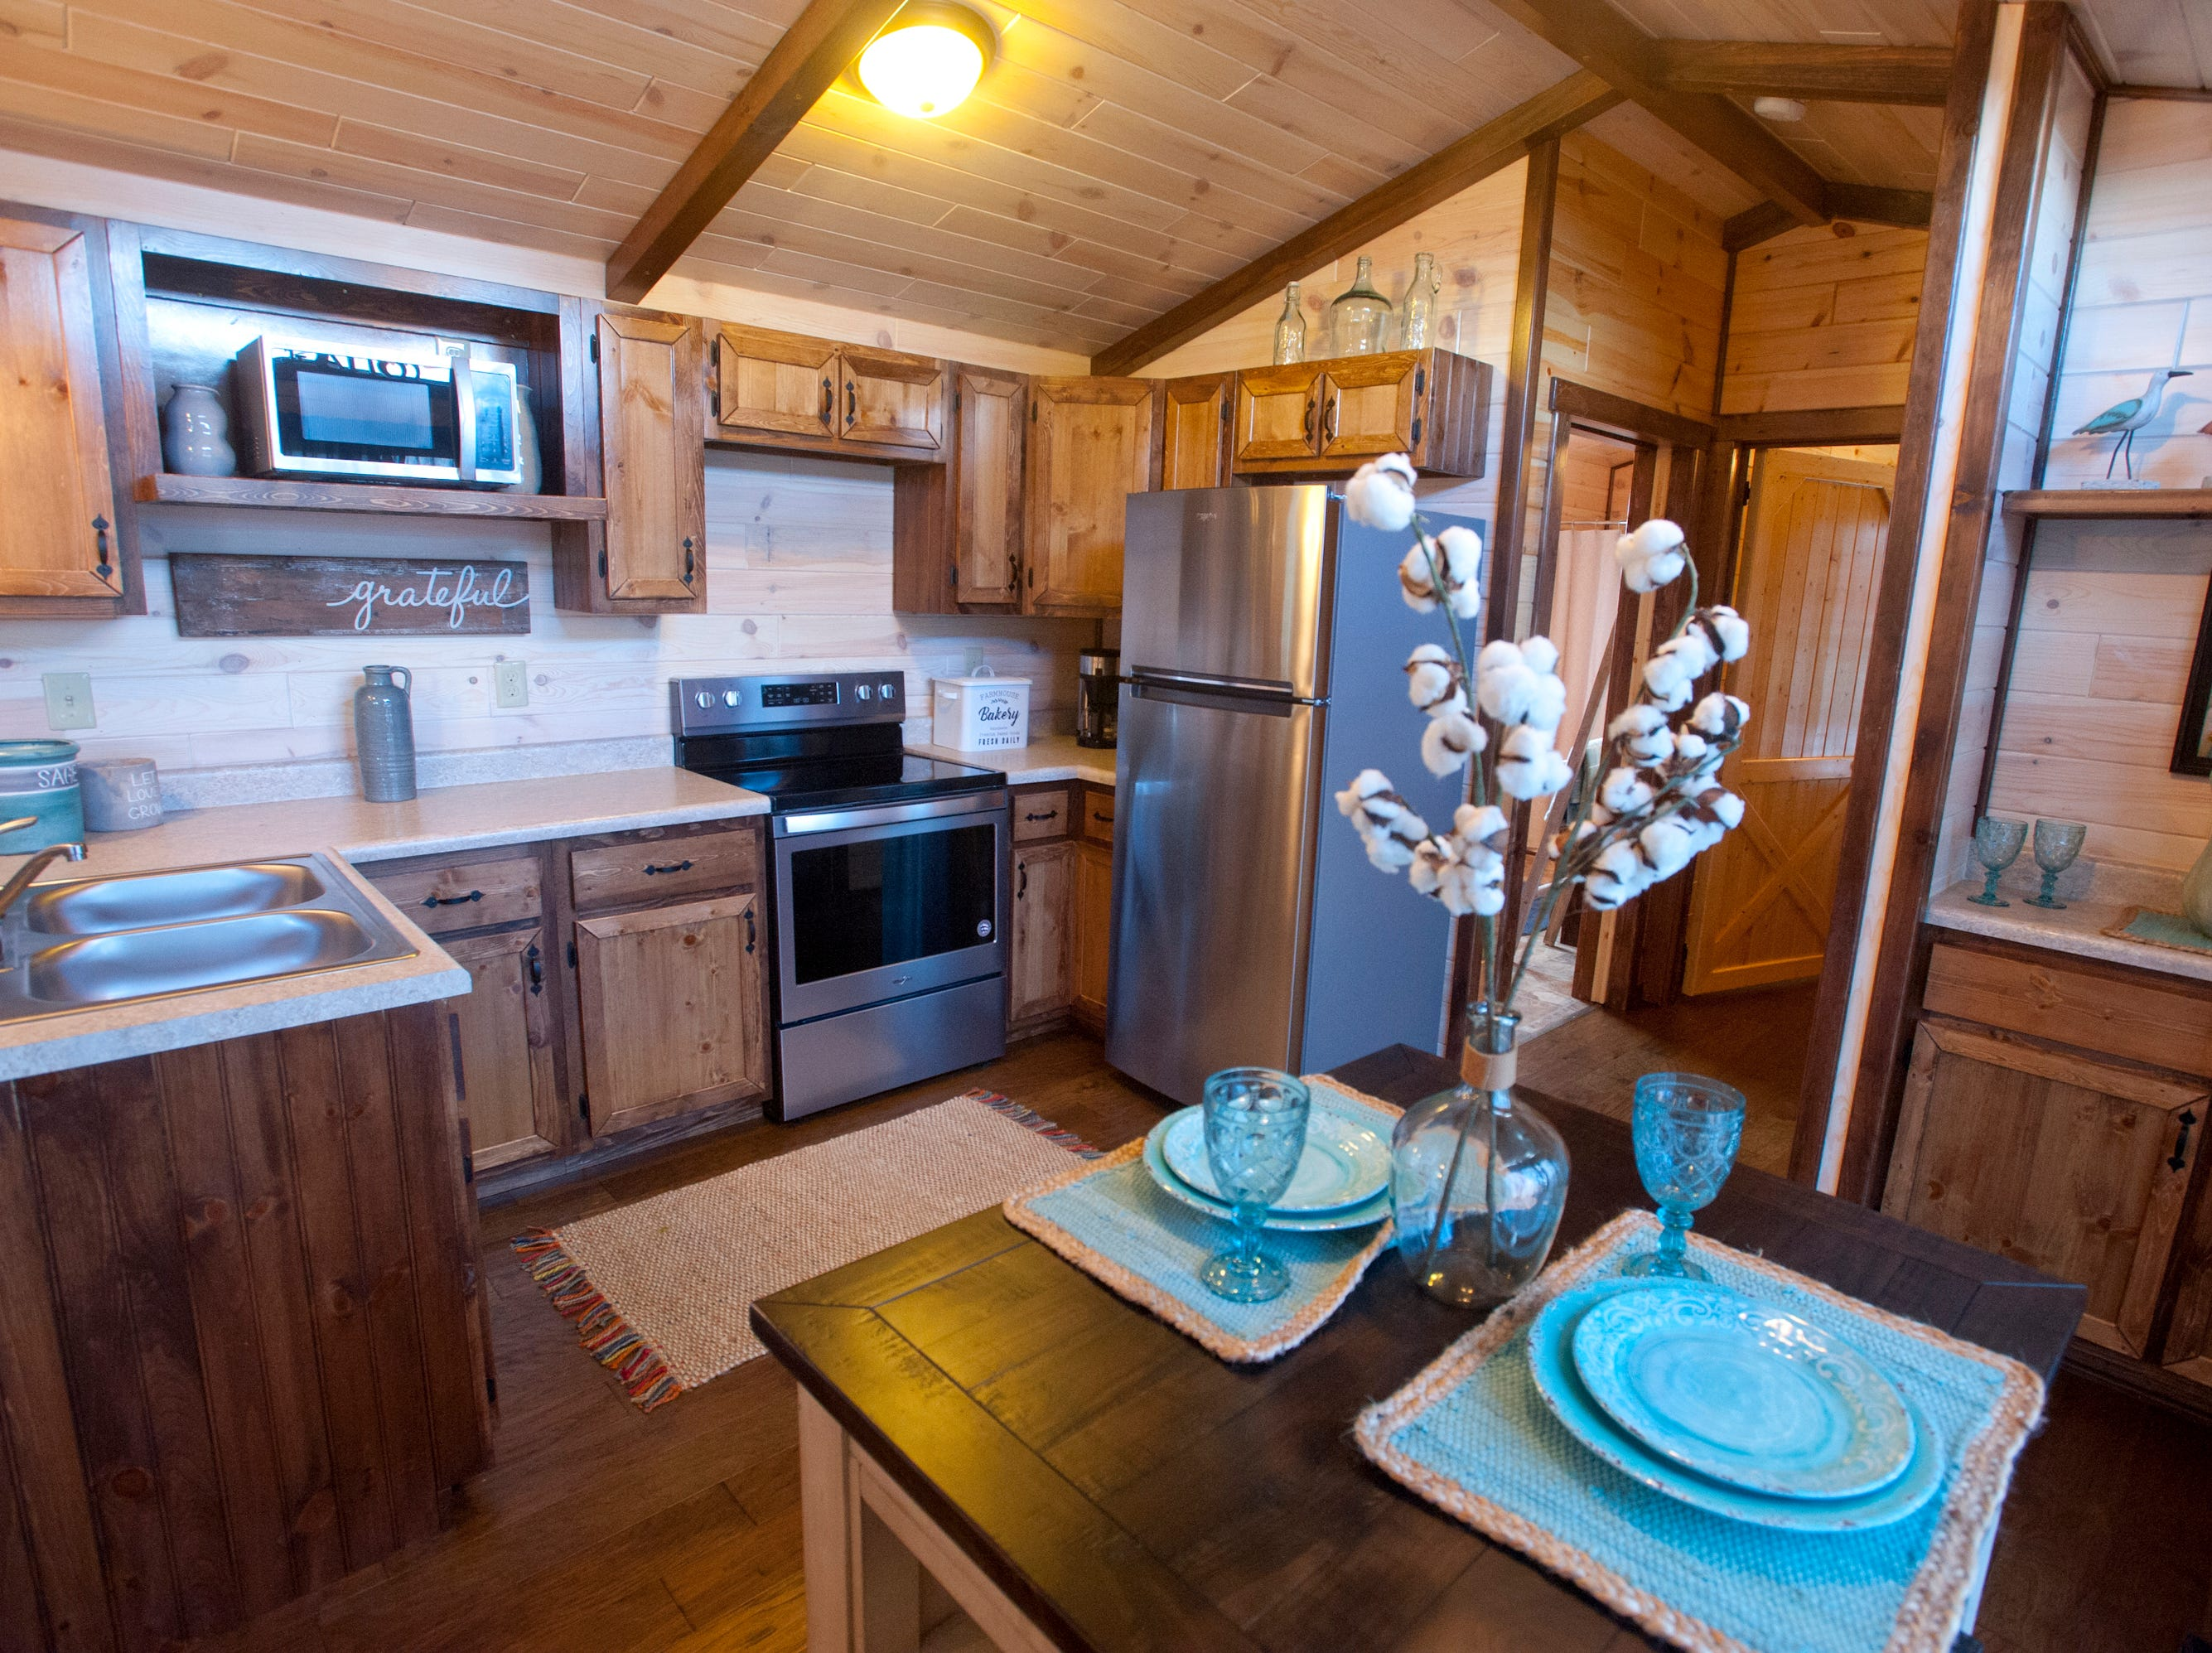 The kitchen of the open-concept cottage.September 10, 2018